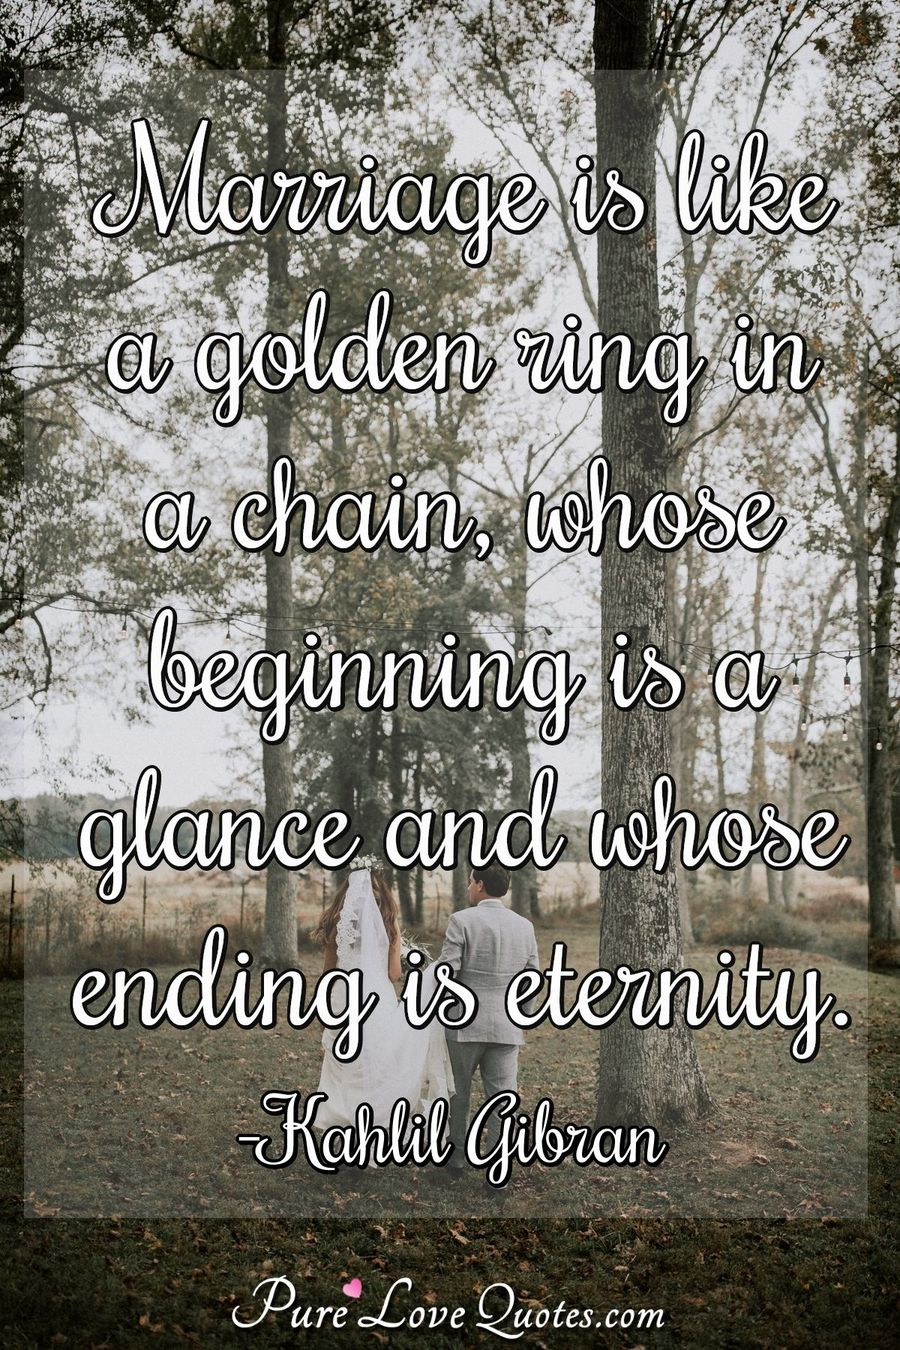 Marriage is like a golden ring in a chain, whose beginning